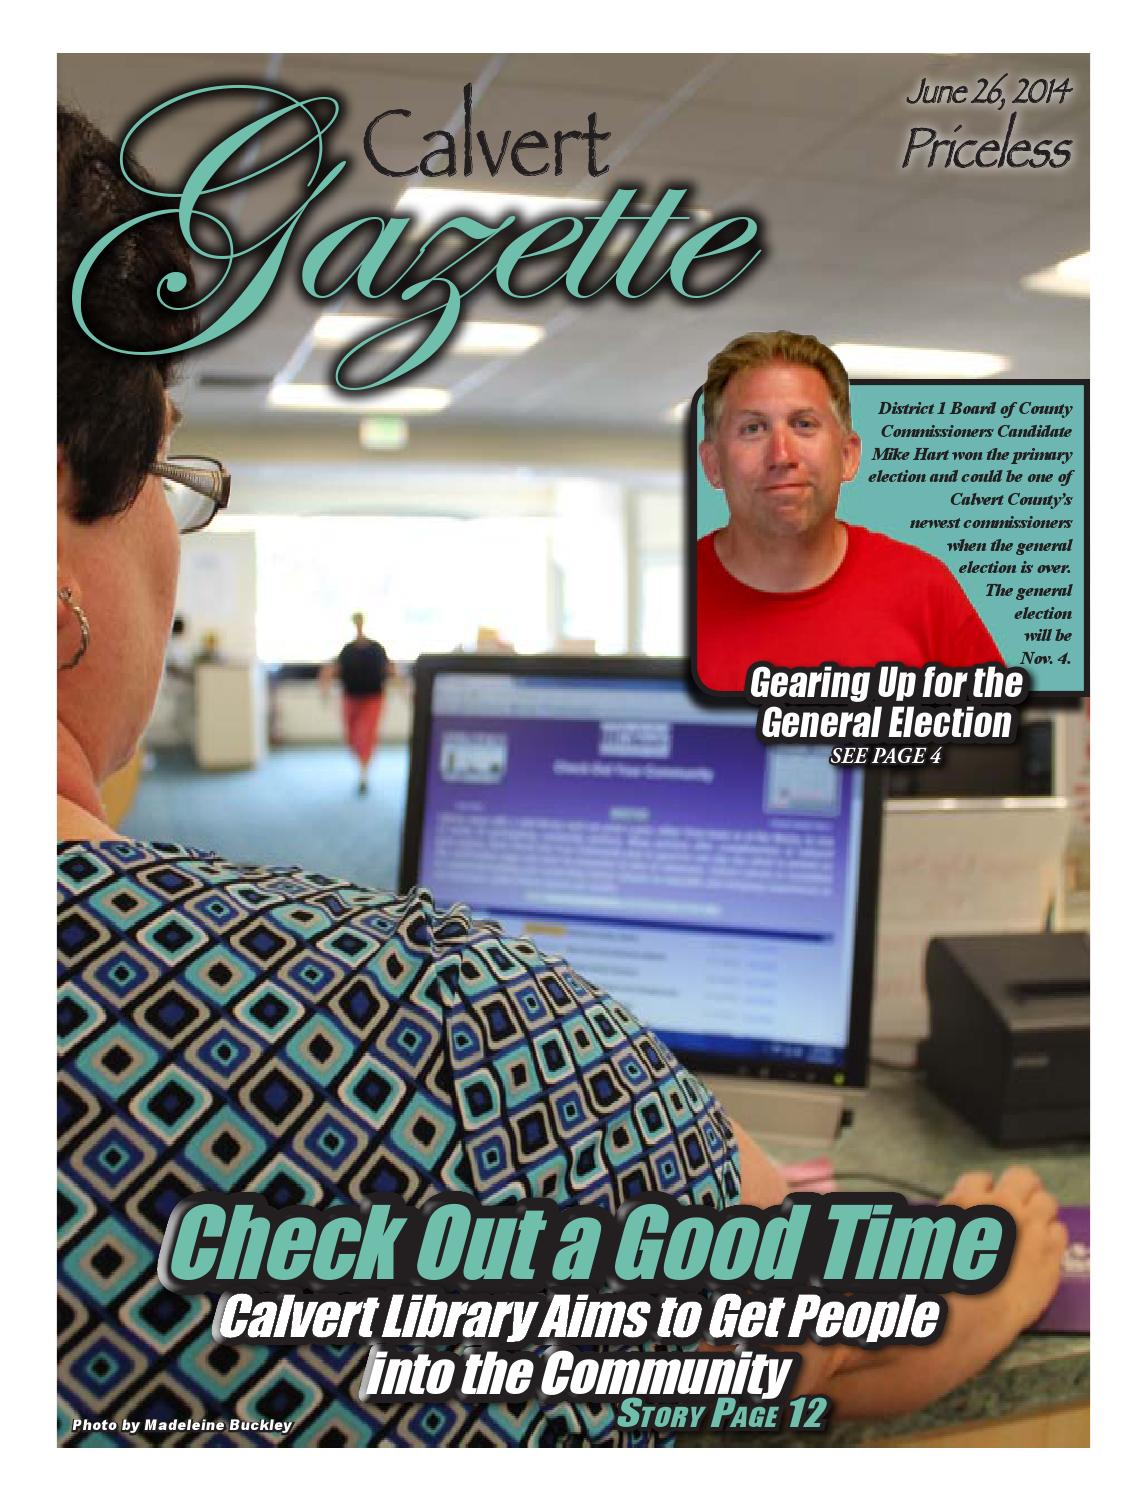 54fbfe9d3d50f 2014-06-26 The Calvert Gazette by Southern Maryland Online - issuu